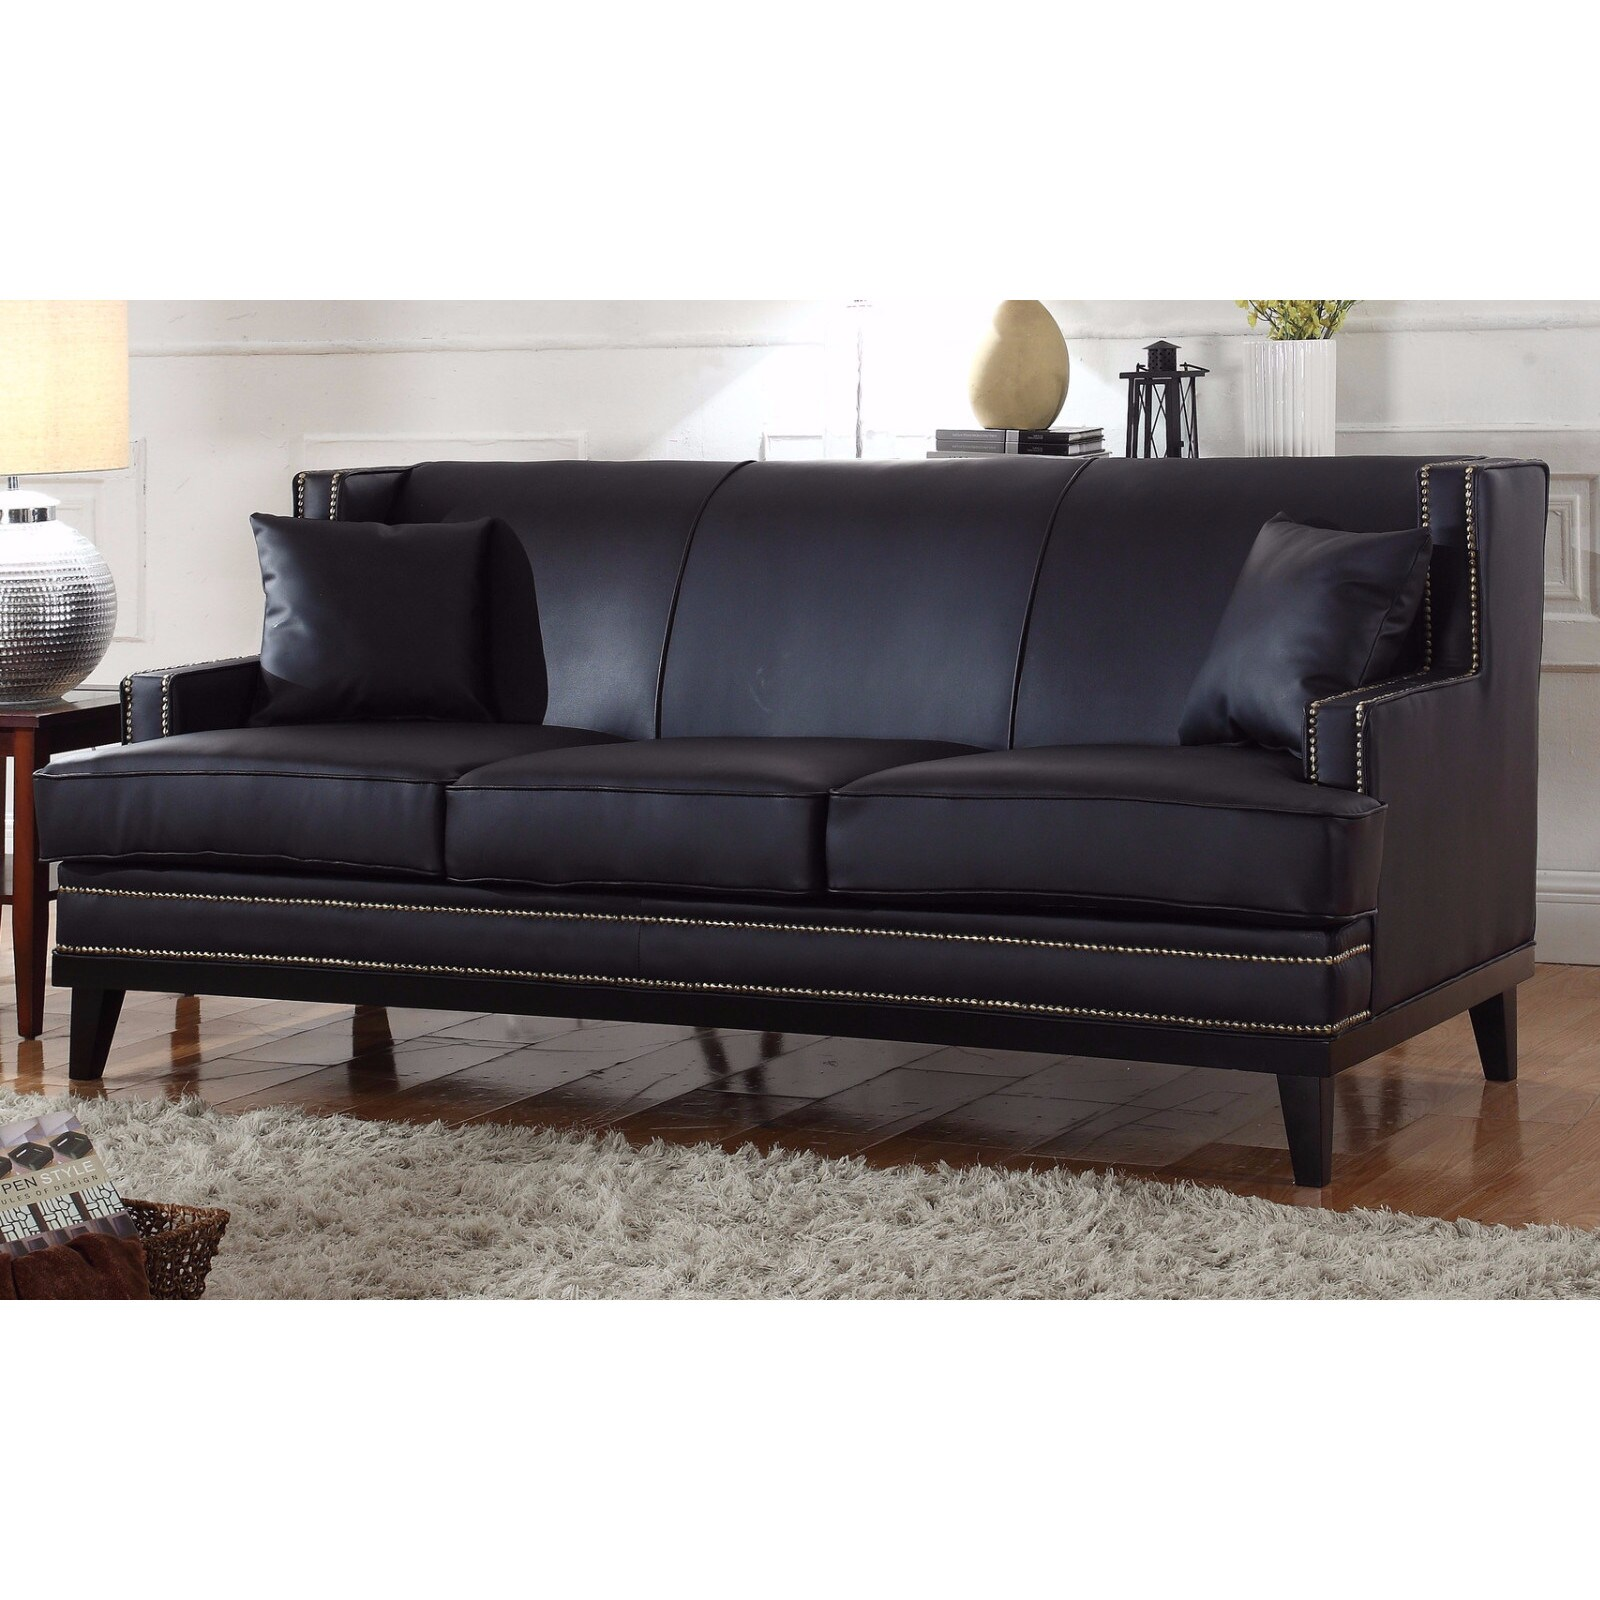 Modern Soft Bonded Leather Sofa With Nailhead Trim Details Free Shipping Today 13232427